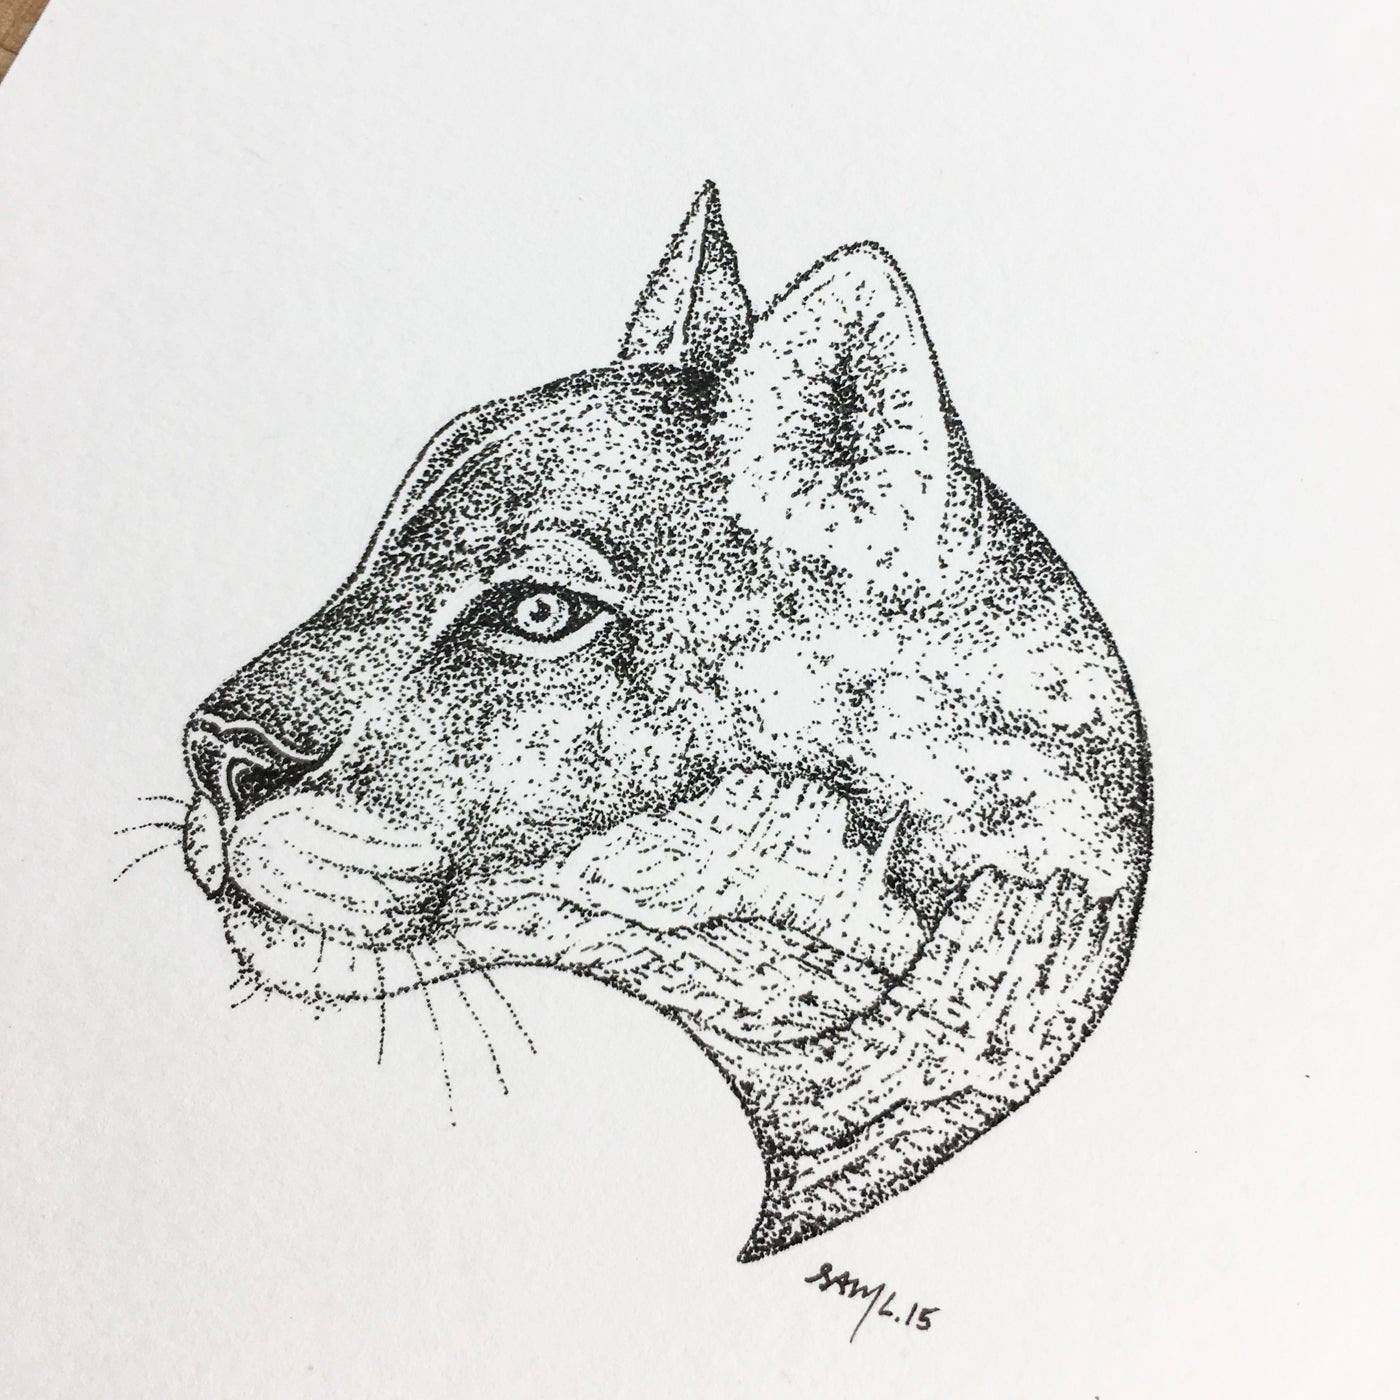 Desert Cat - Original Illustration 6x8in